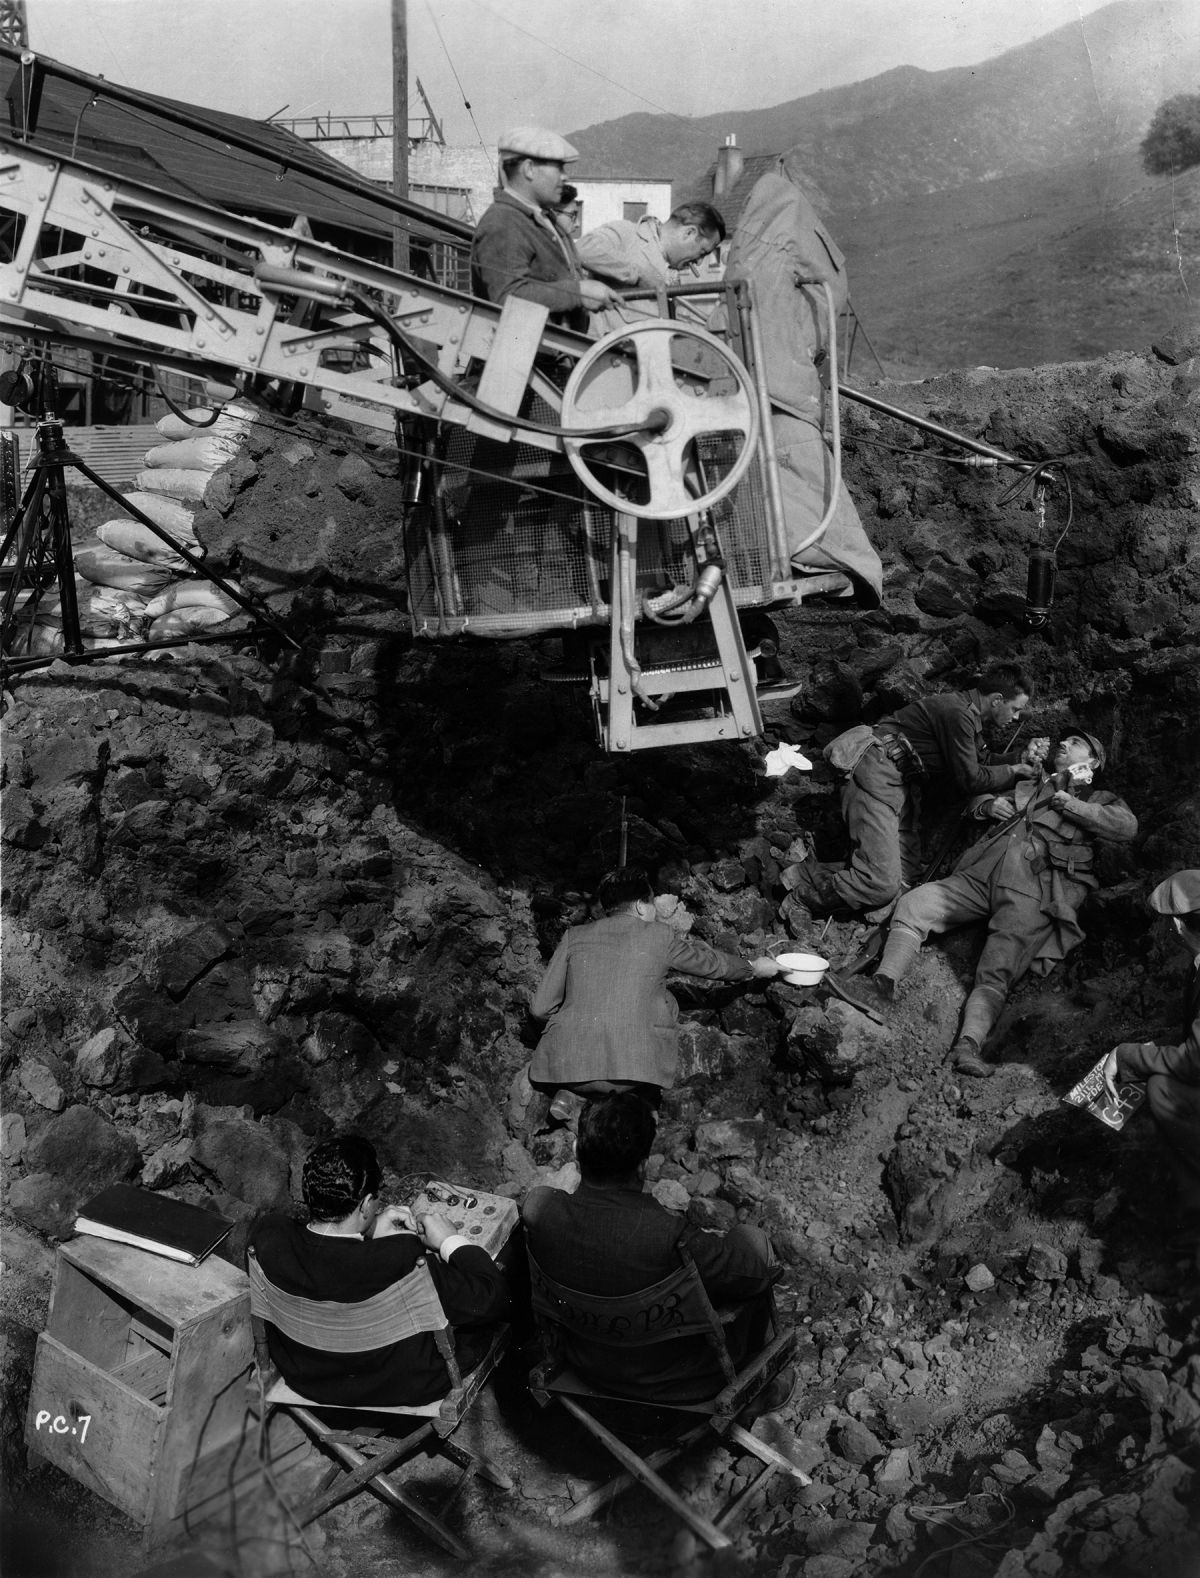 Angling in on a crane, Arthur Edeson, ASC behind the camera.